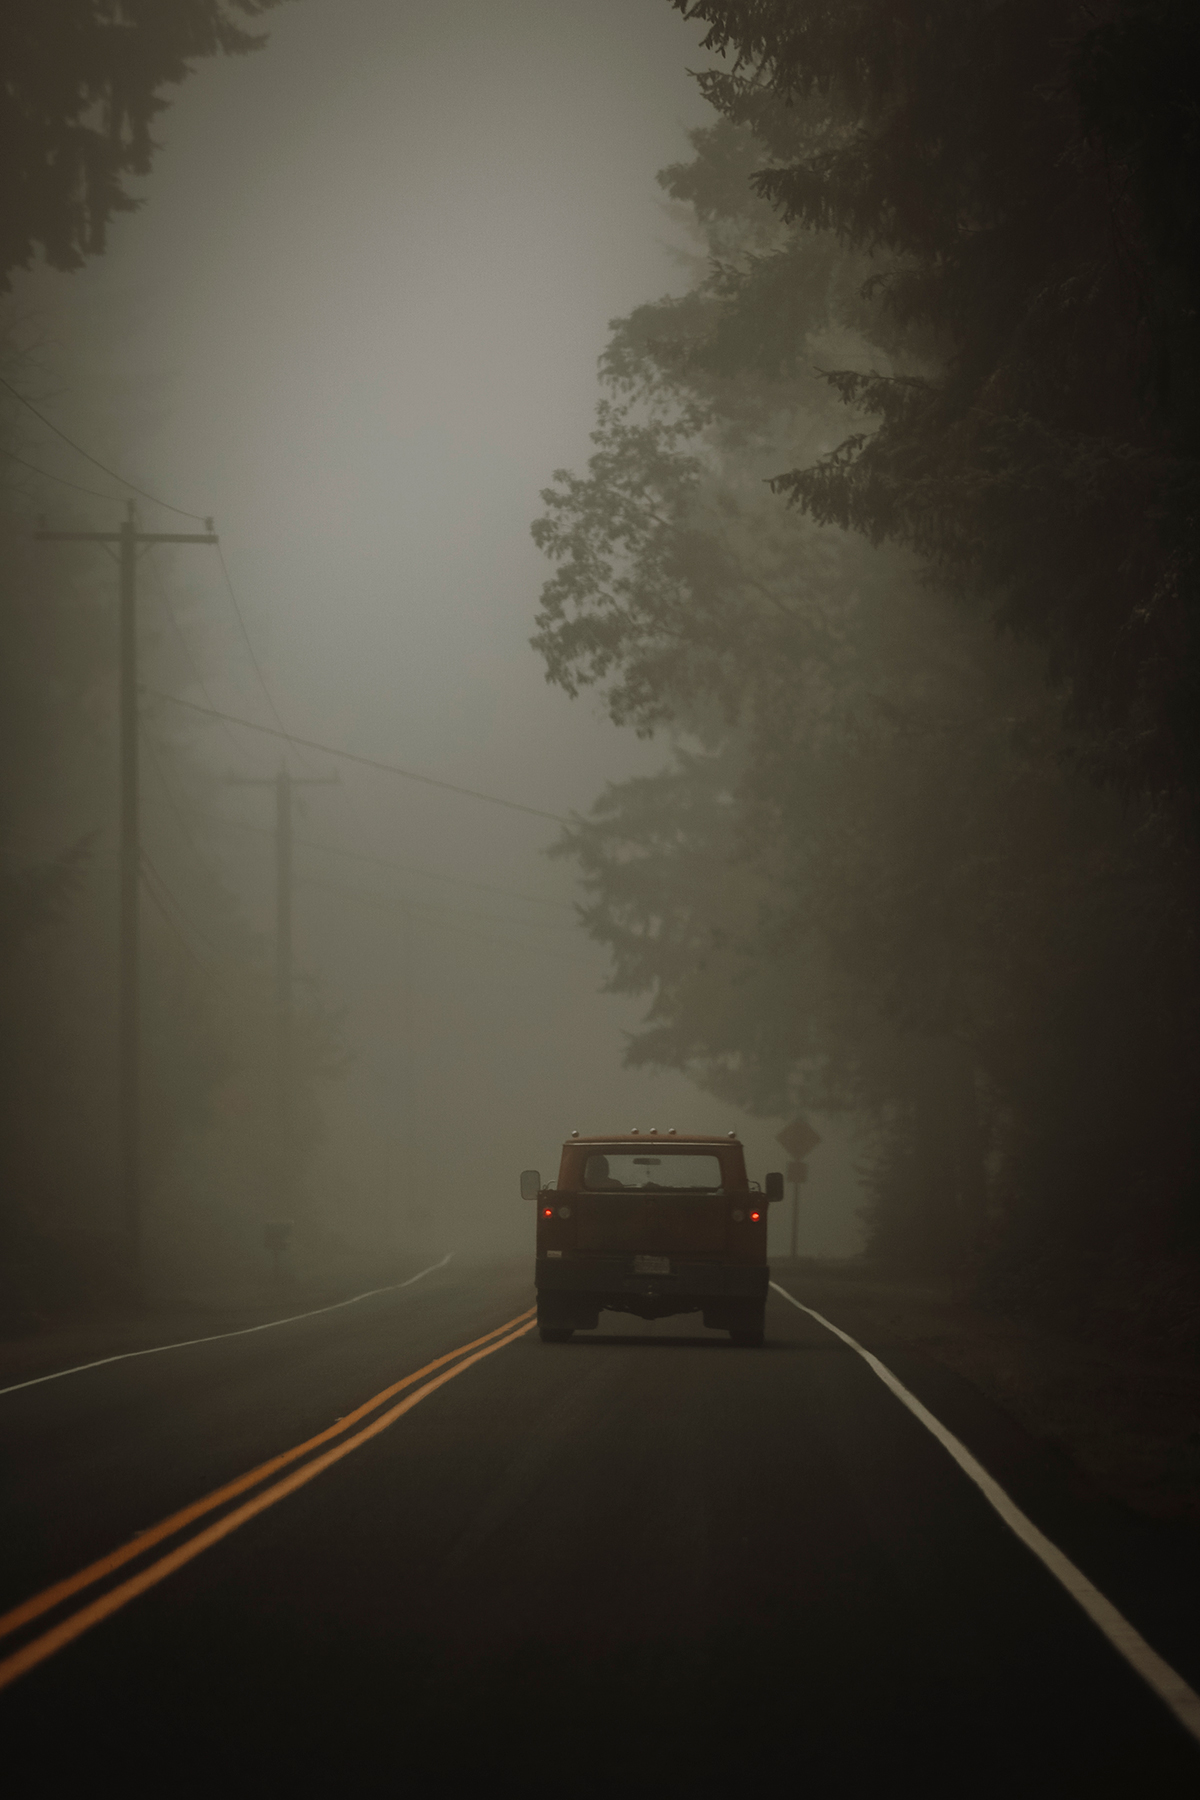 Old truck driving through the fog on Vashon Island